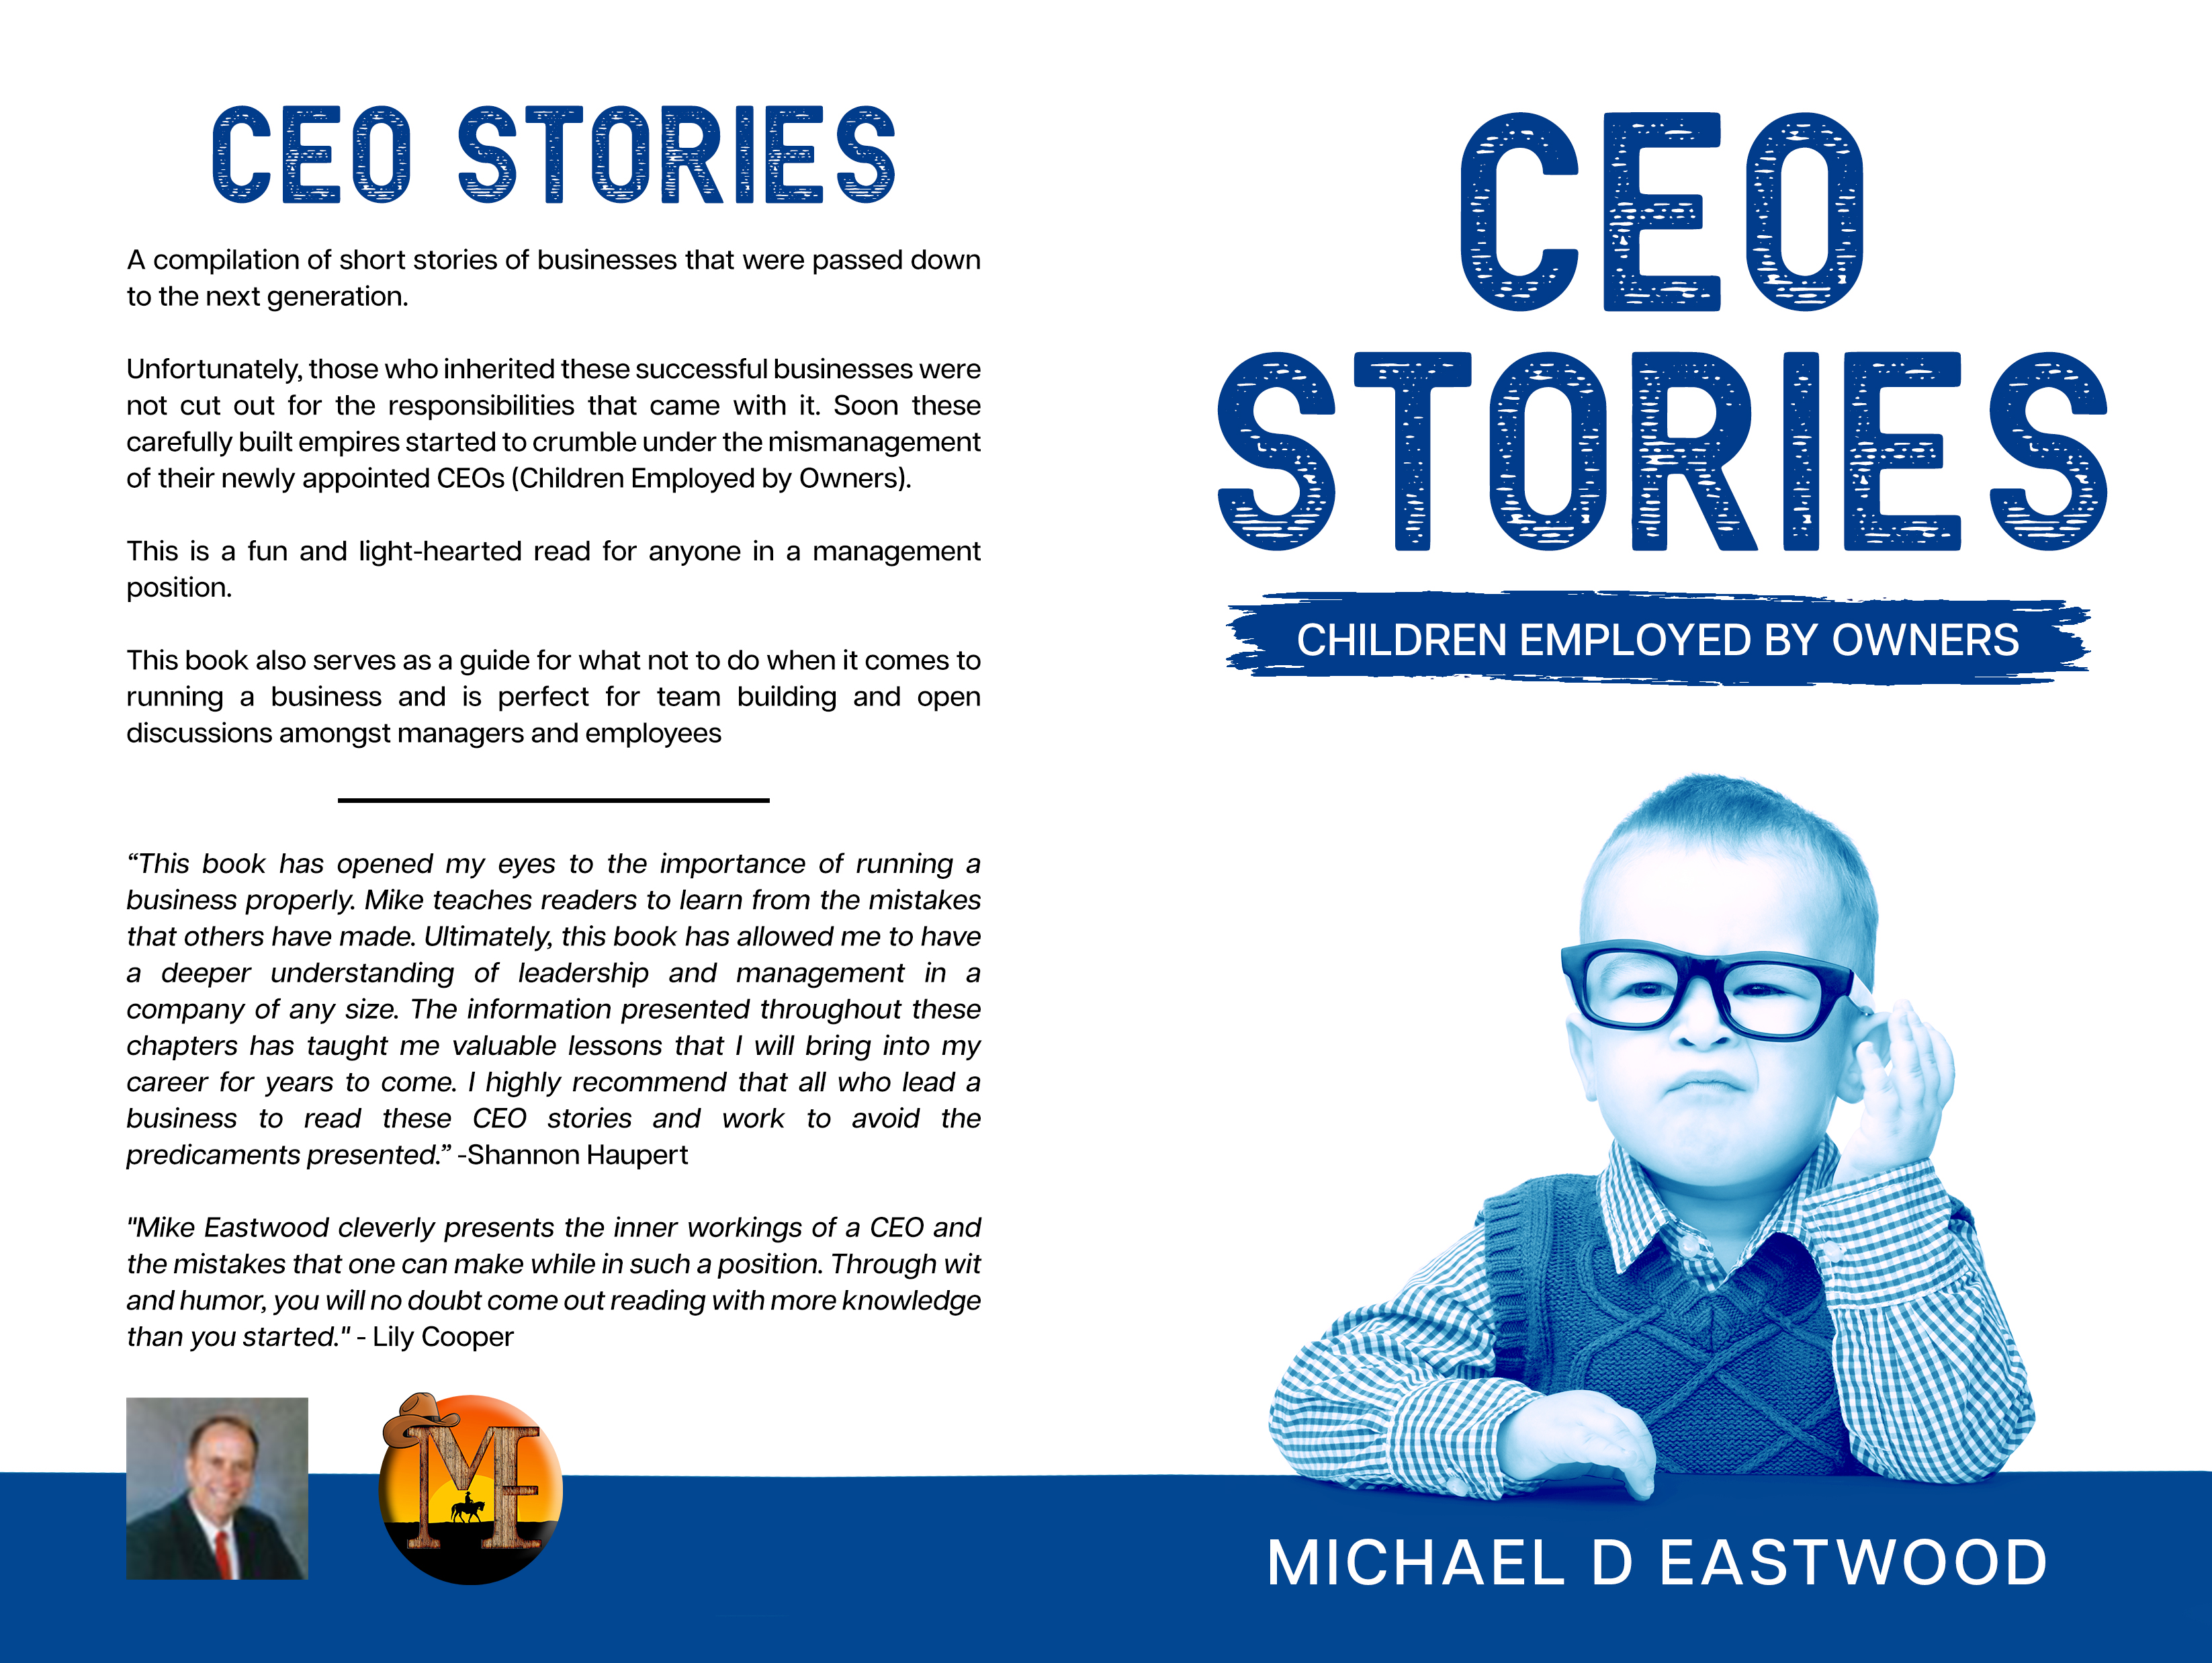 CEO-Stories By Michael Eastwood